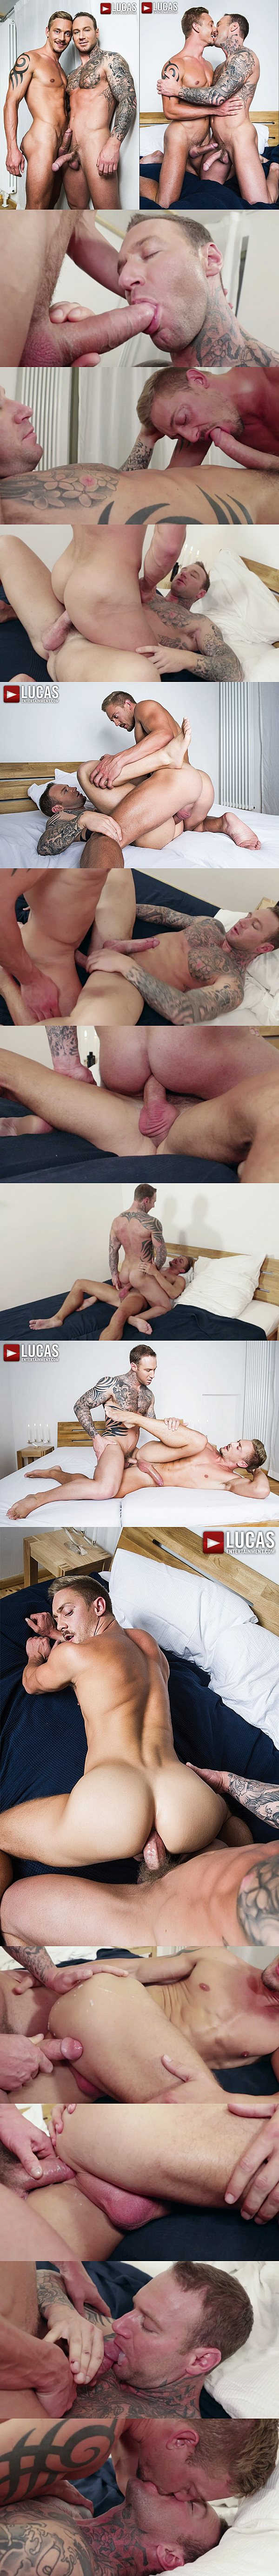 Hot muscle stud Dylan James & Michael Lachlan bareback flip-fuck before Dylan breeds Michael at Lucasentertainment 02